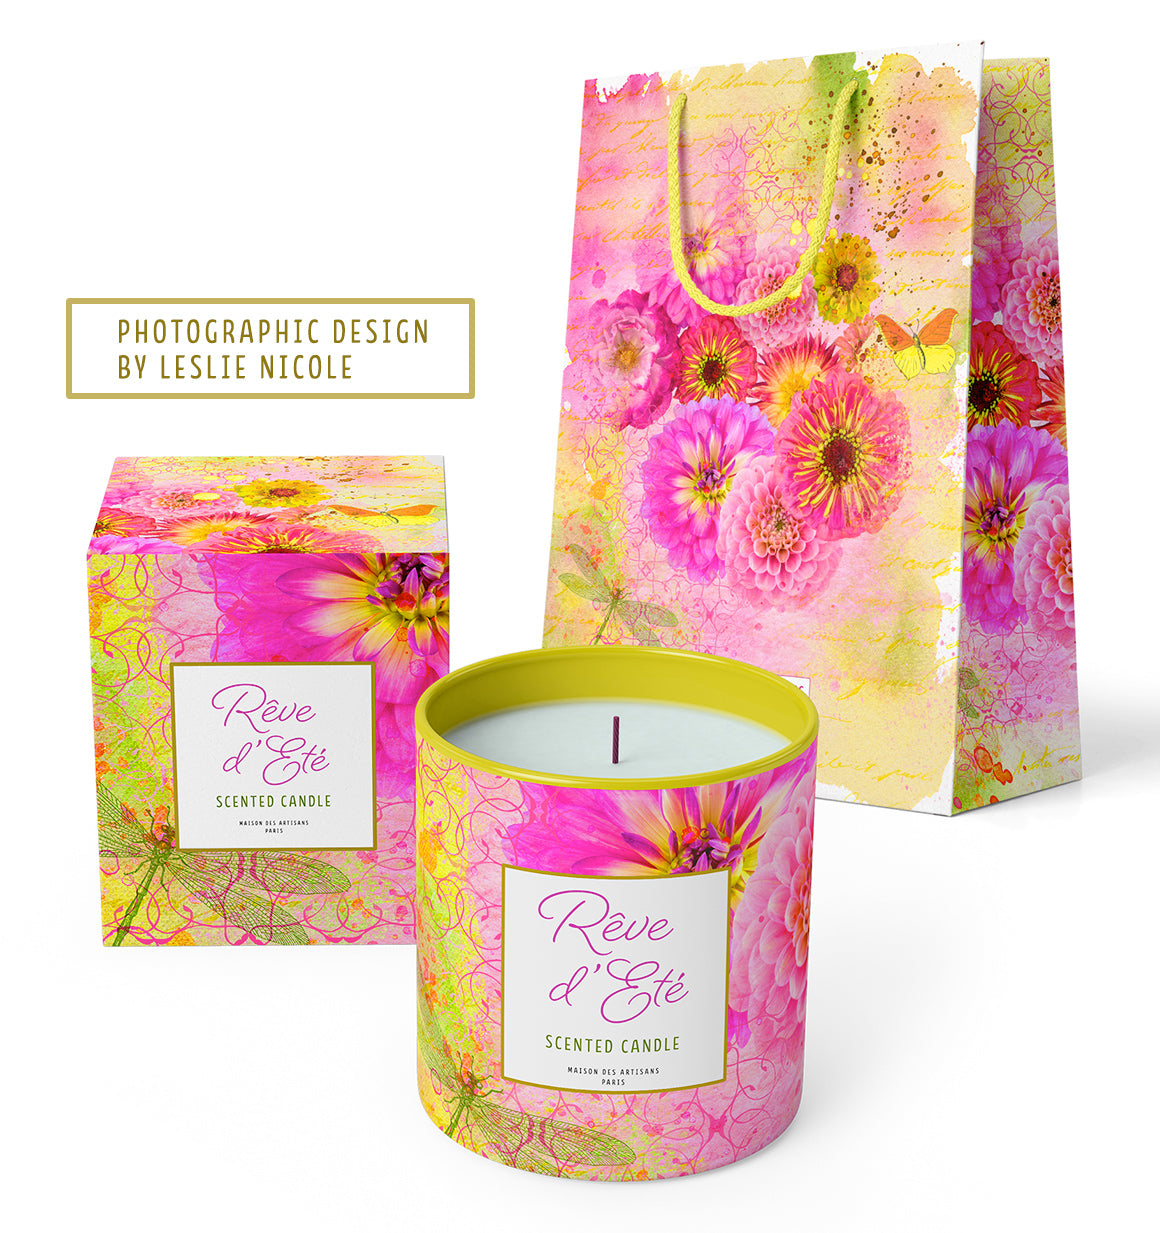 Scented candle and shopping bag design using photographic floral art by Leslie Nicole.